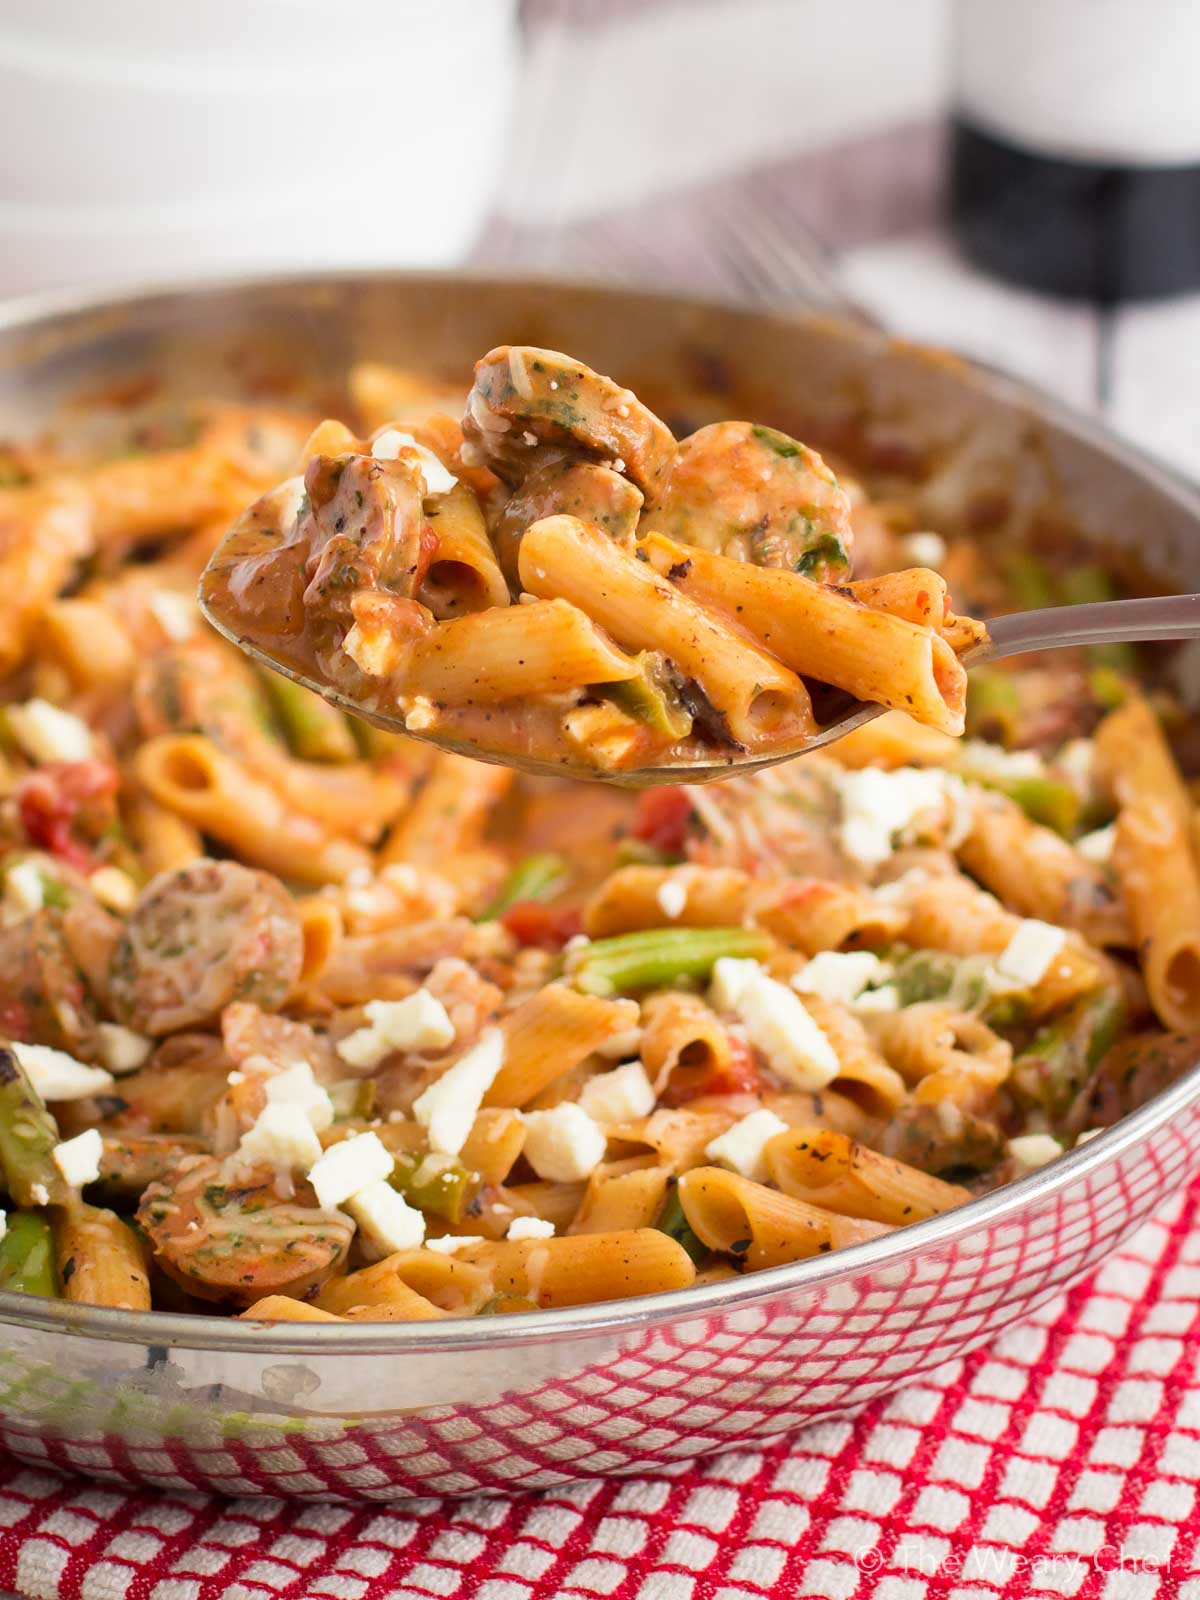 Italian Sausage Pasta Skillet Recipe - The Weary Chef